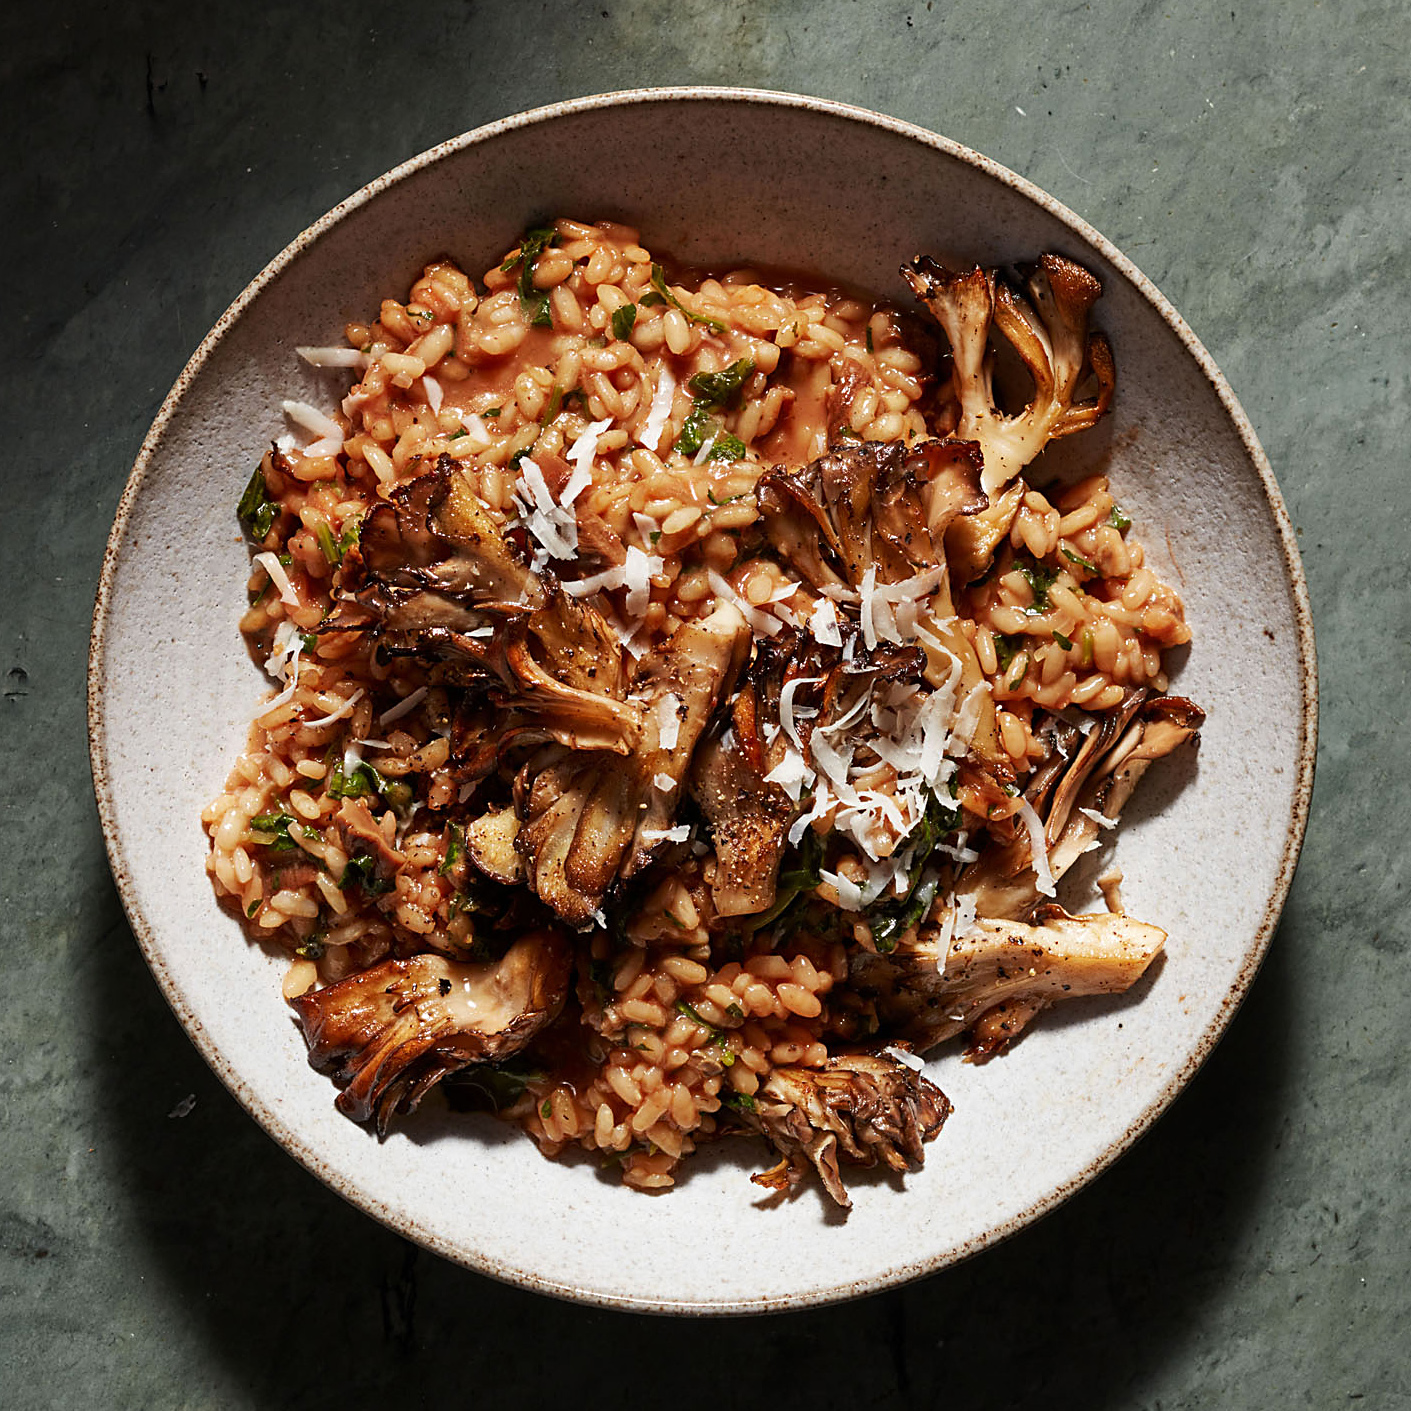 Red Wine Risotto with Kale & Mushrooms